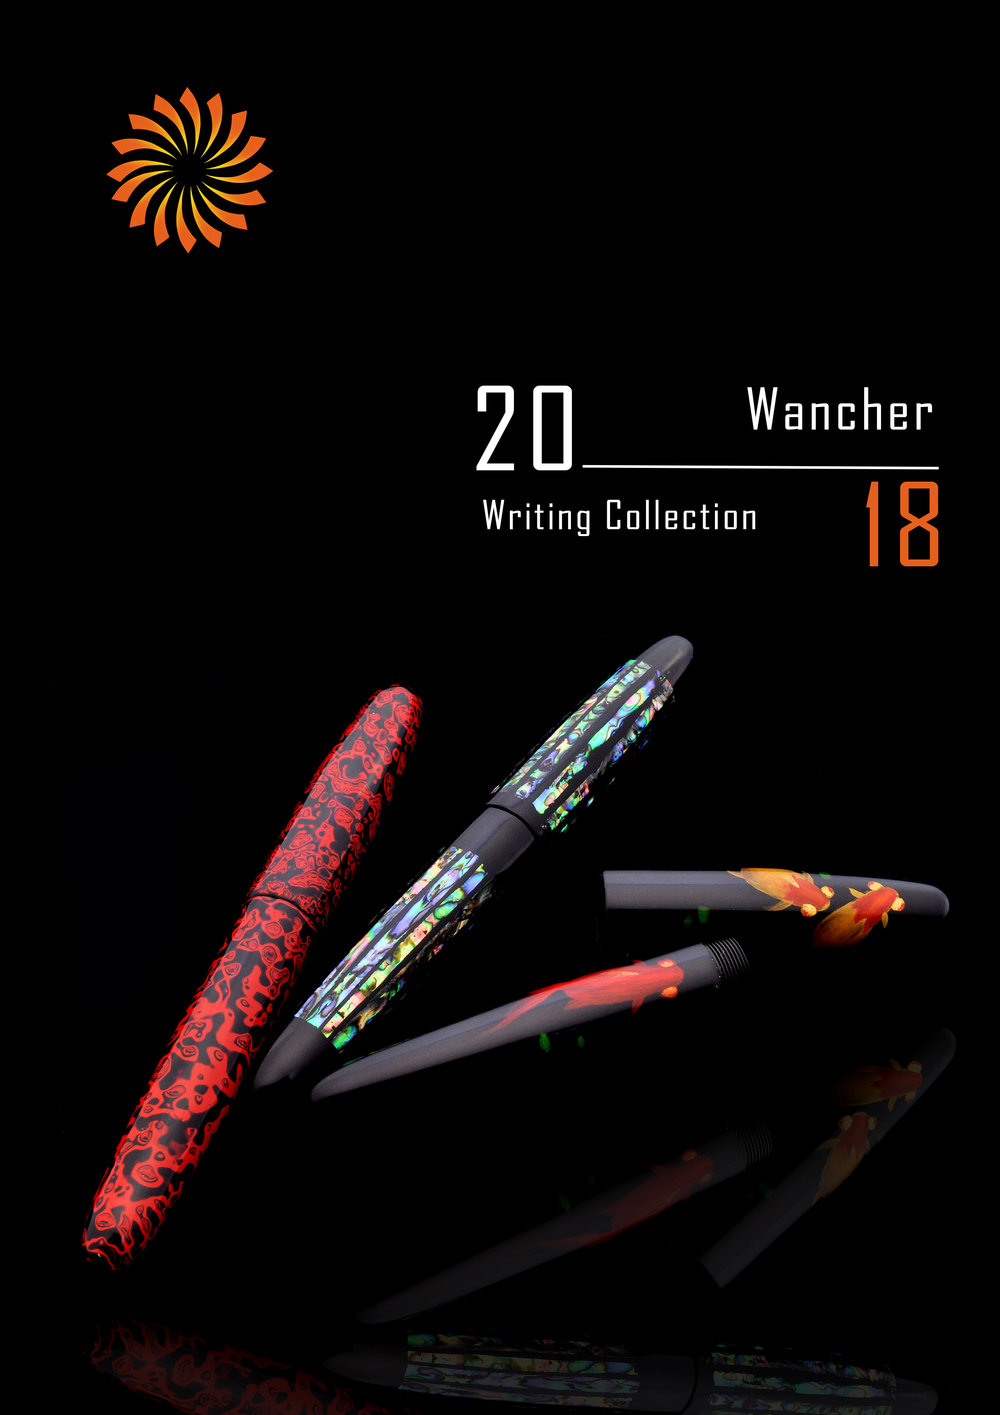 Writing Instrument Catalog